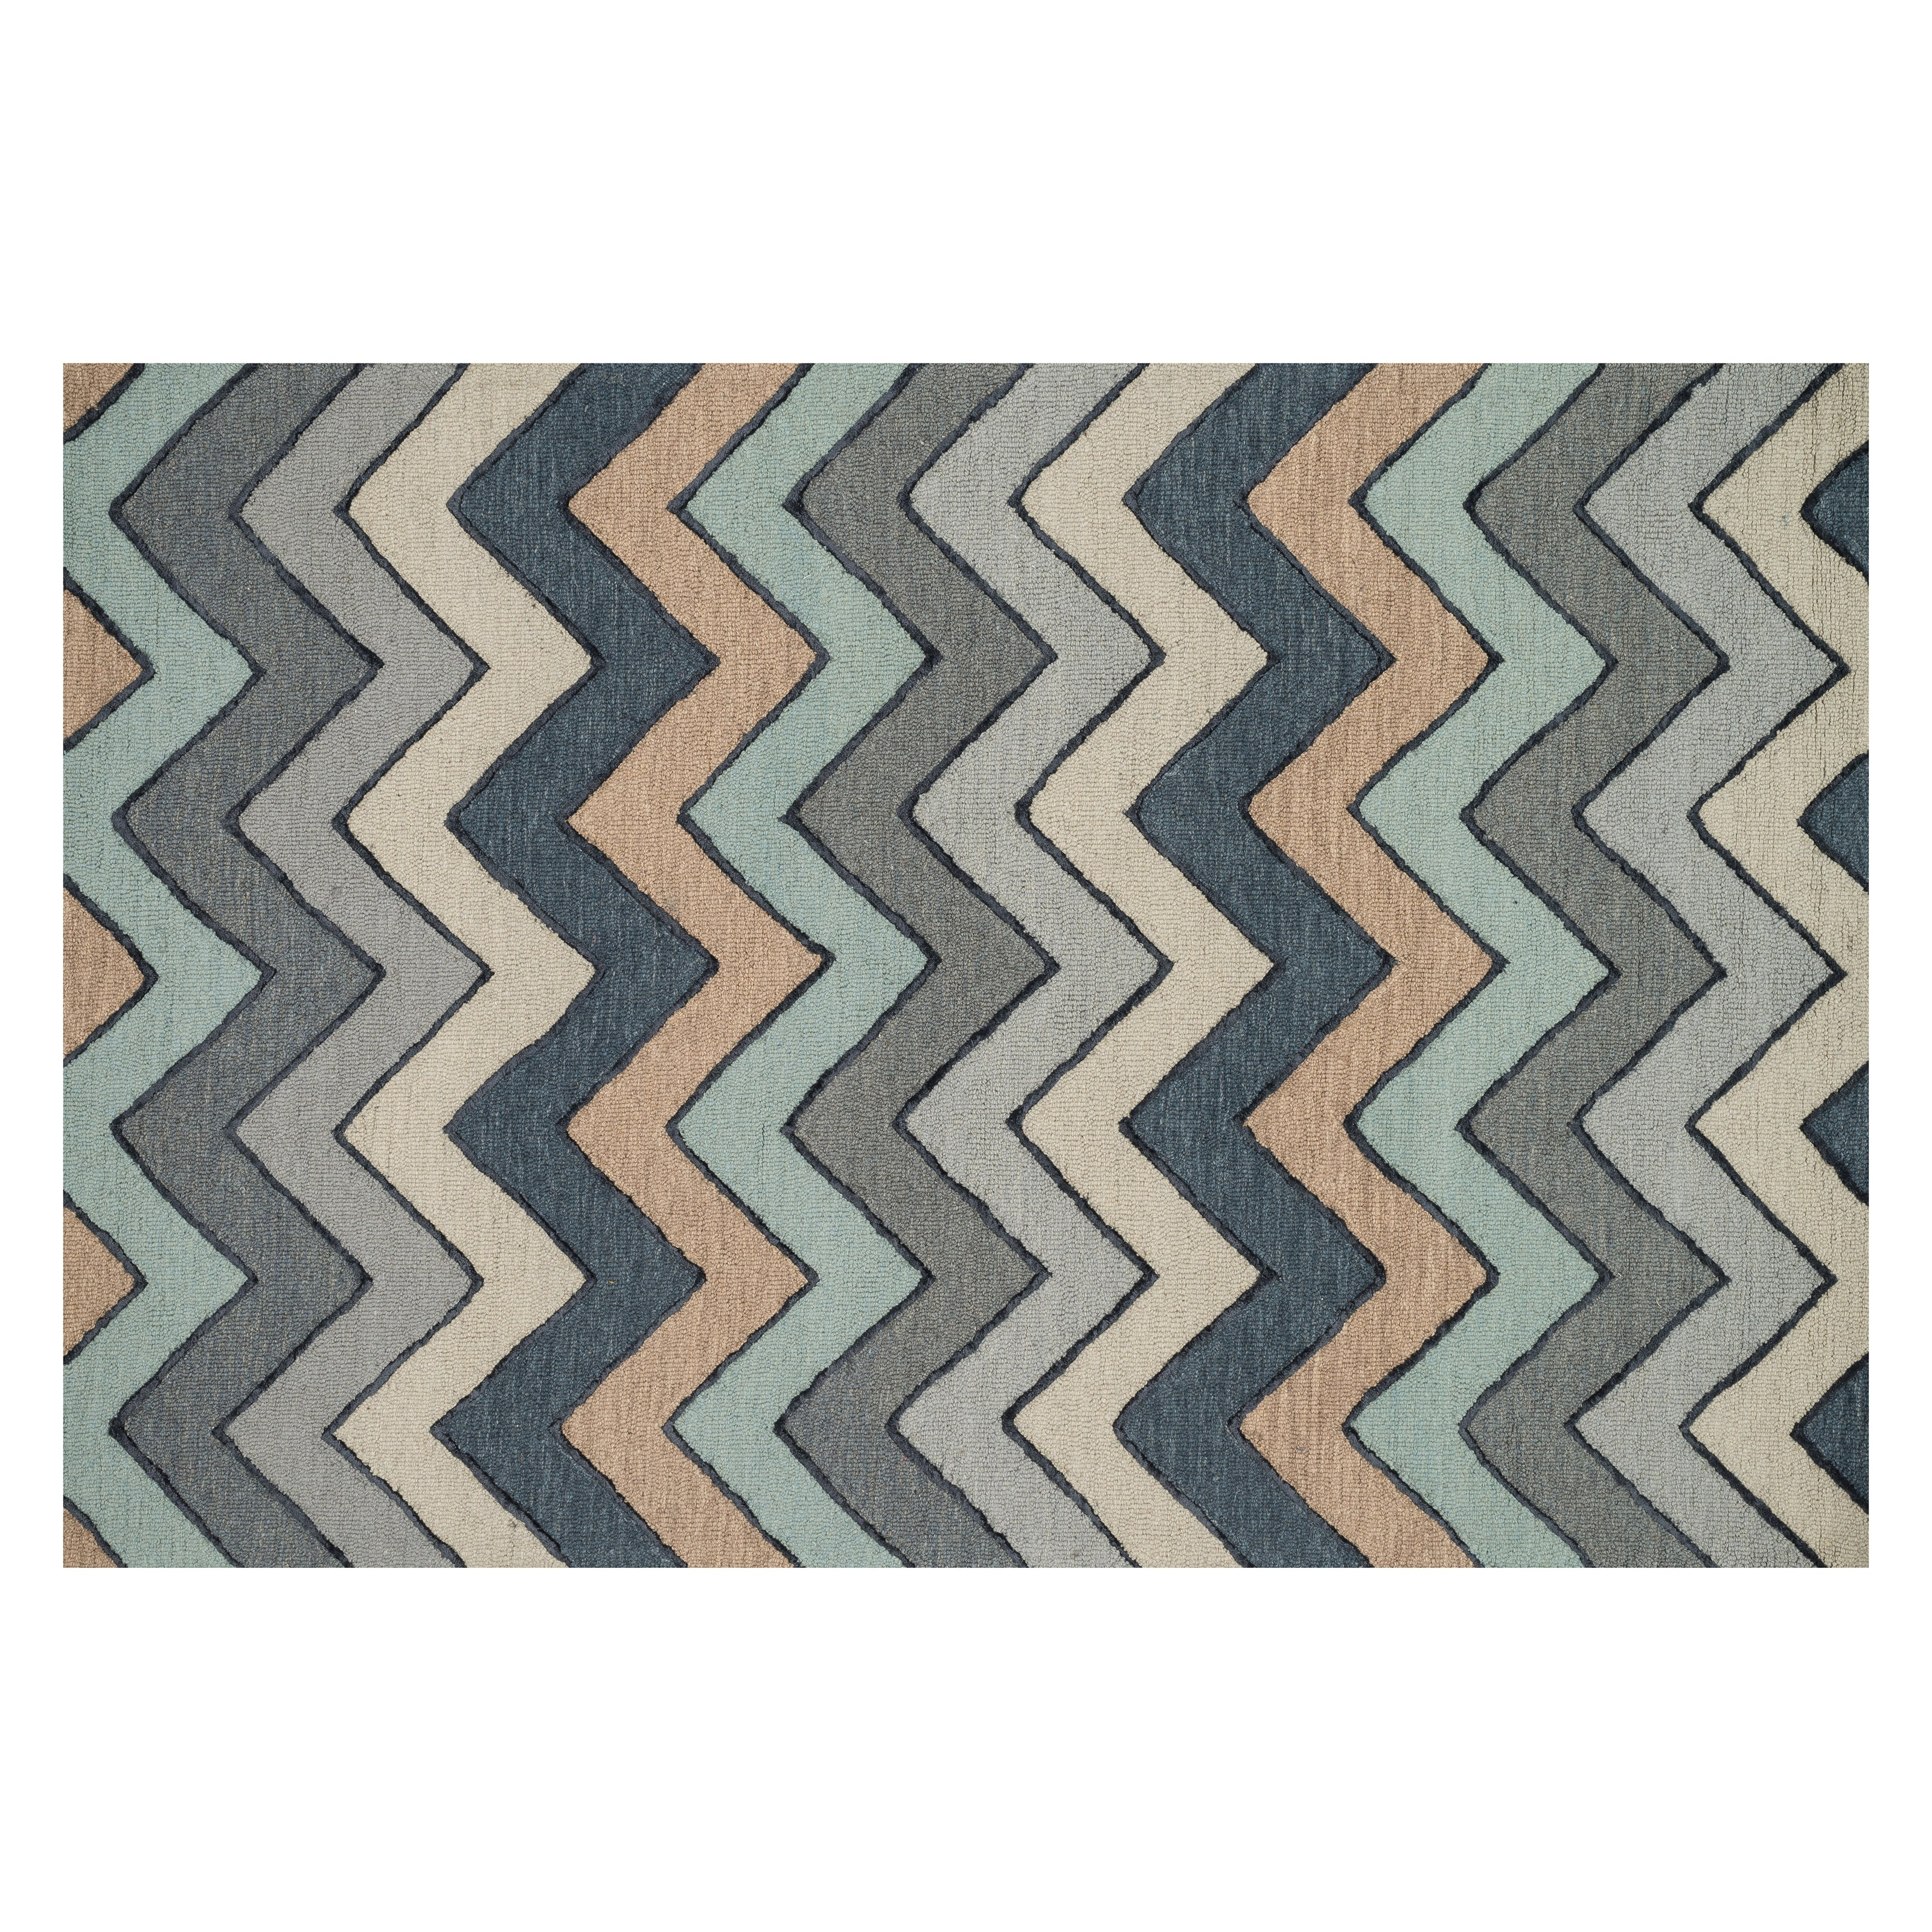 "Loloi Rugs PANAPC-14GYML3656 Panache Collection Area Rug, Grey/Multicolor, 3 6"" x 5 6"""